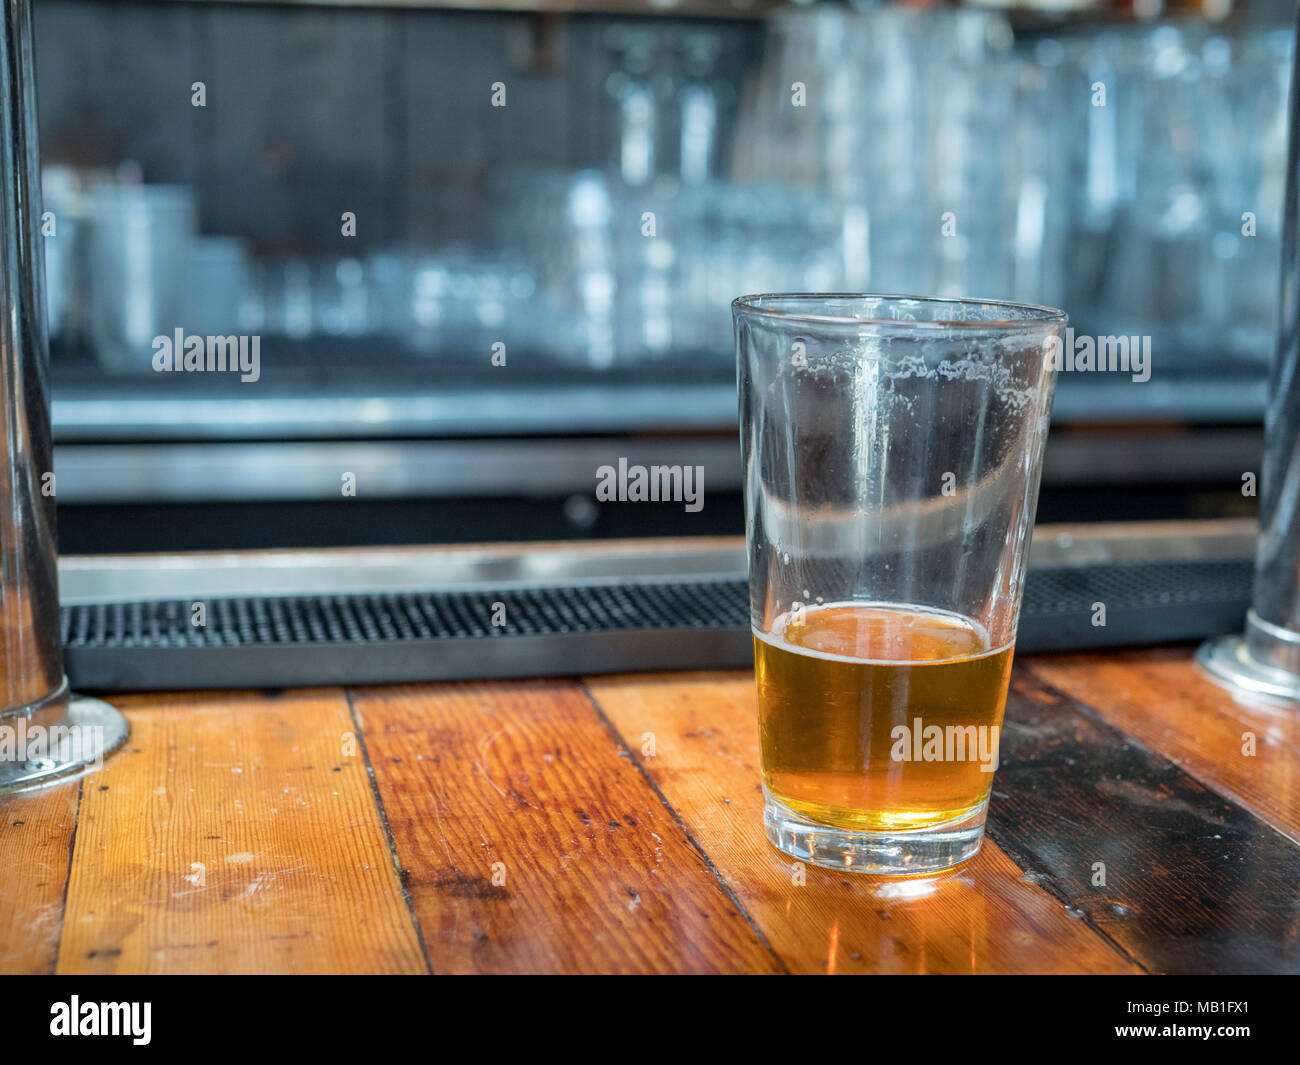 Almost empty pint glass of beer sitting on woodencountertop for last call. Bar in background - Stock Image